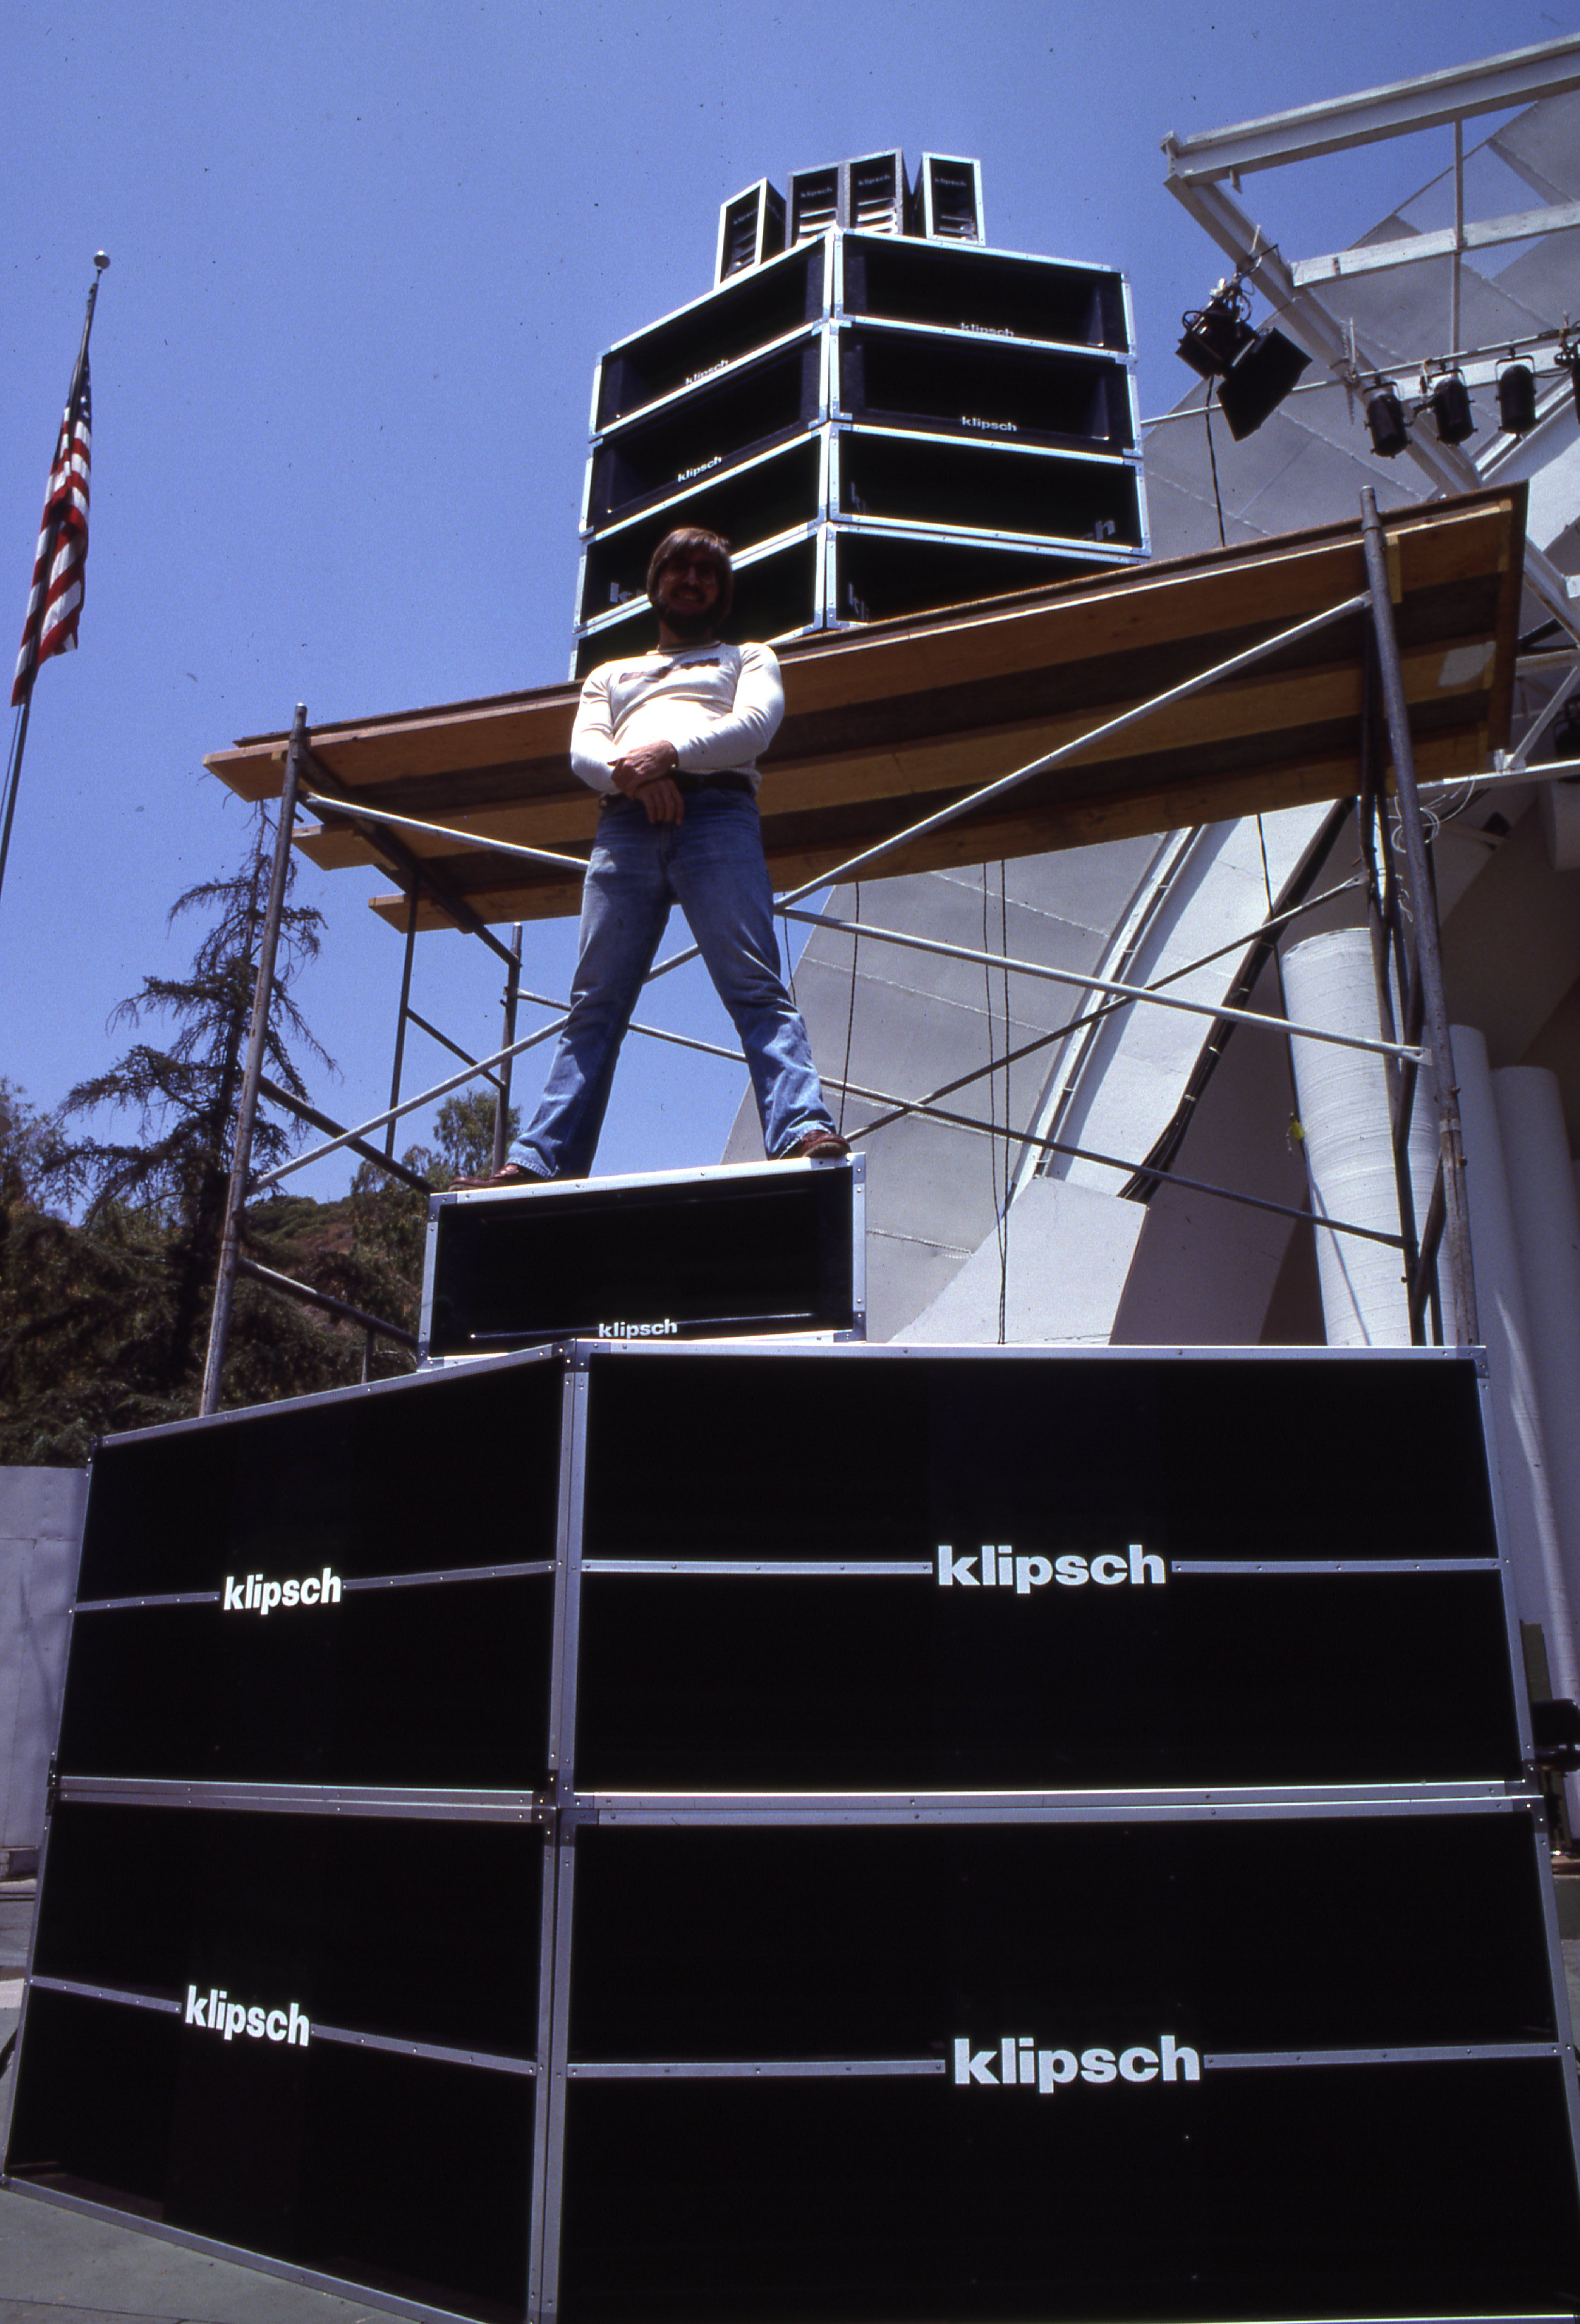 When Klipsch got into concert speakers, they got into them